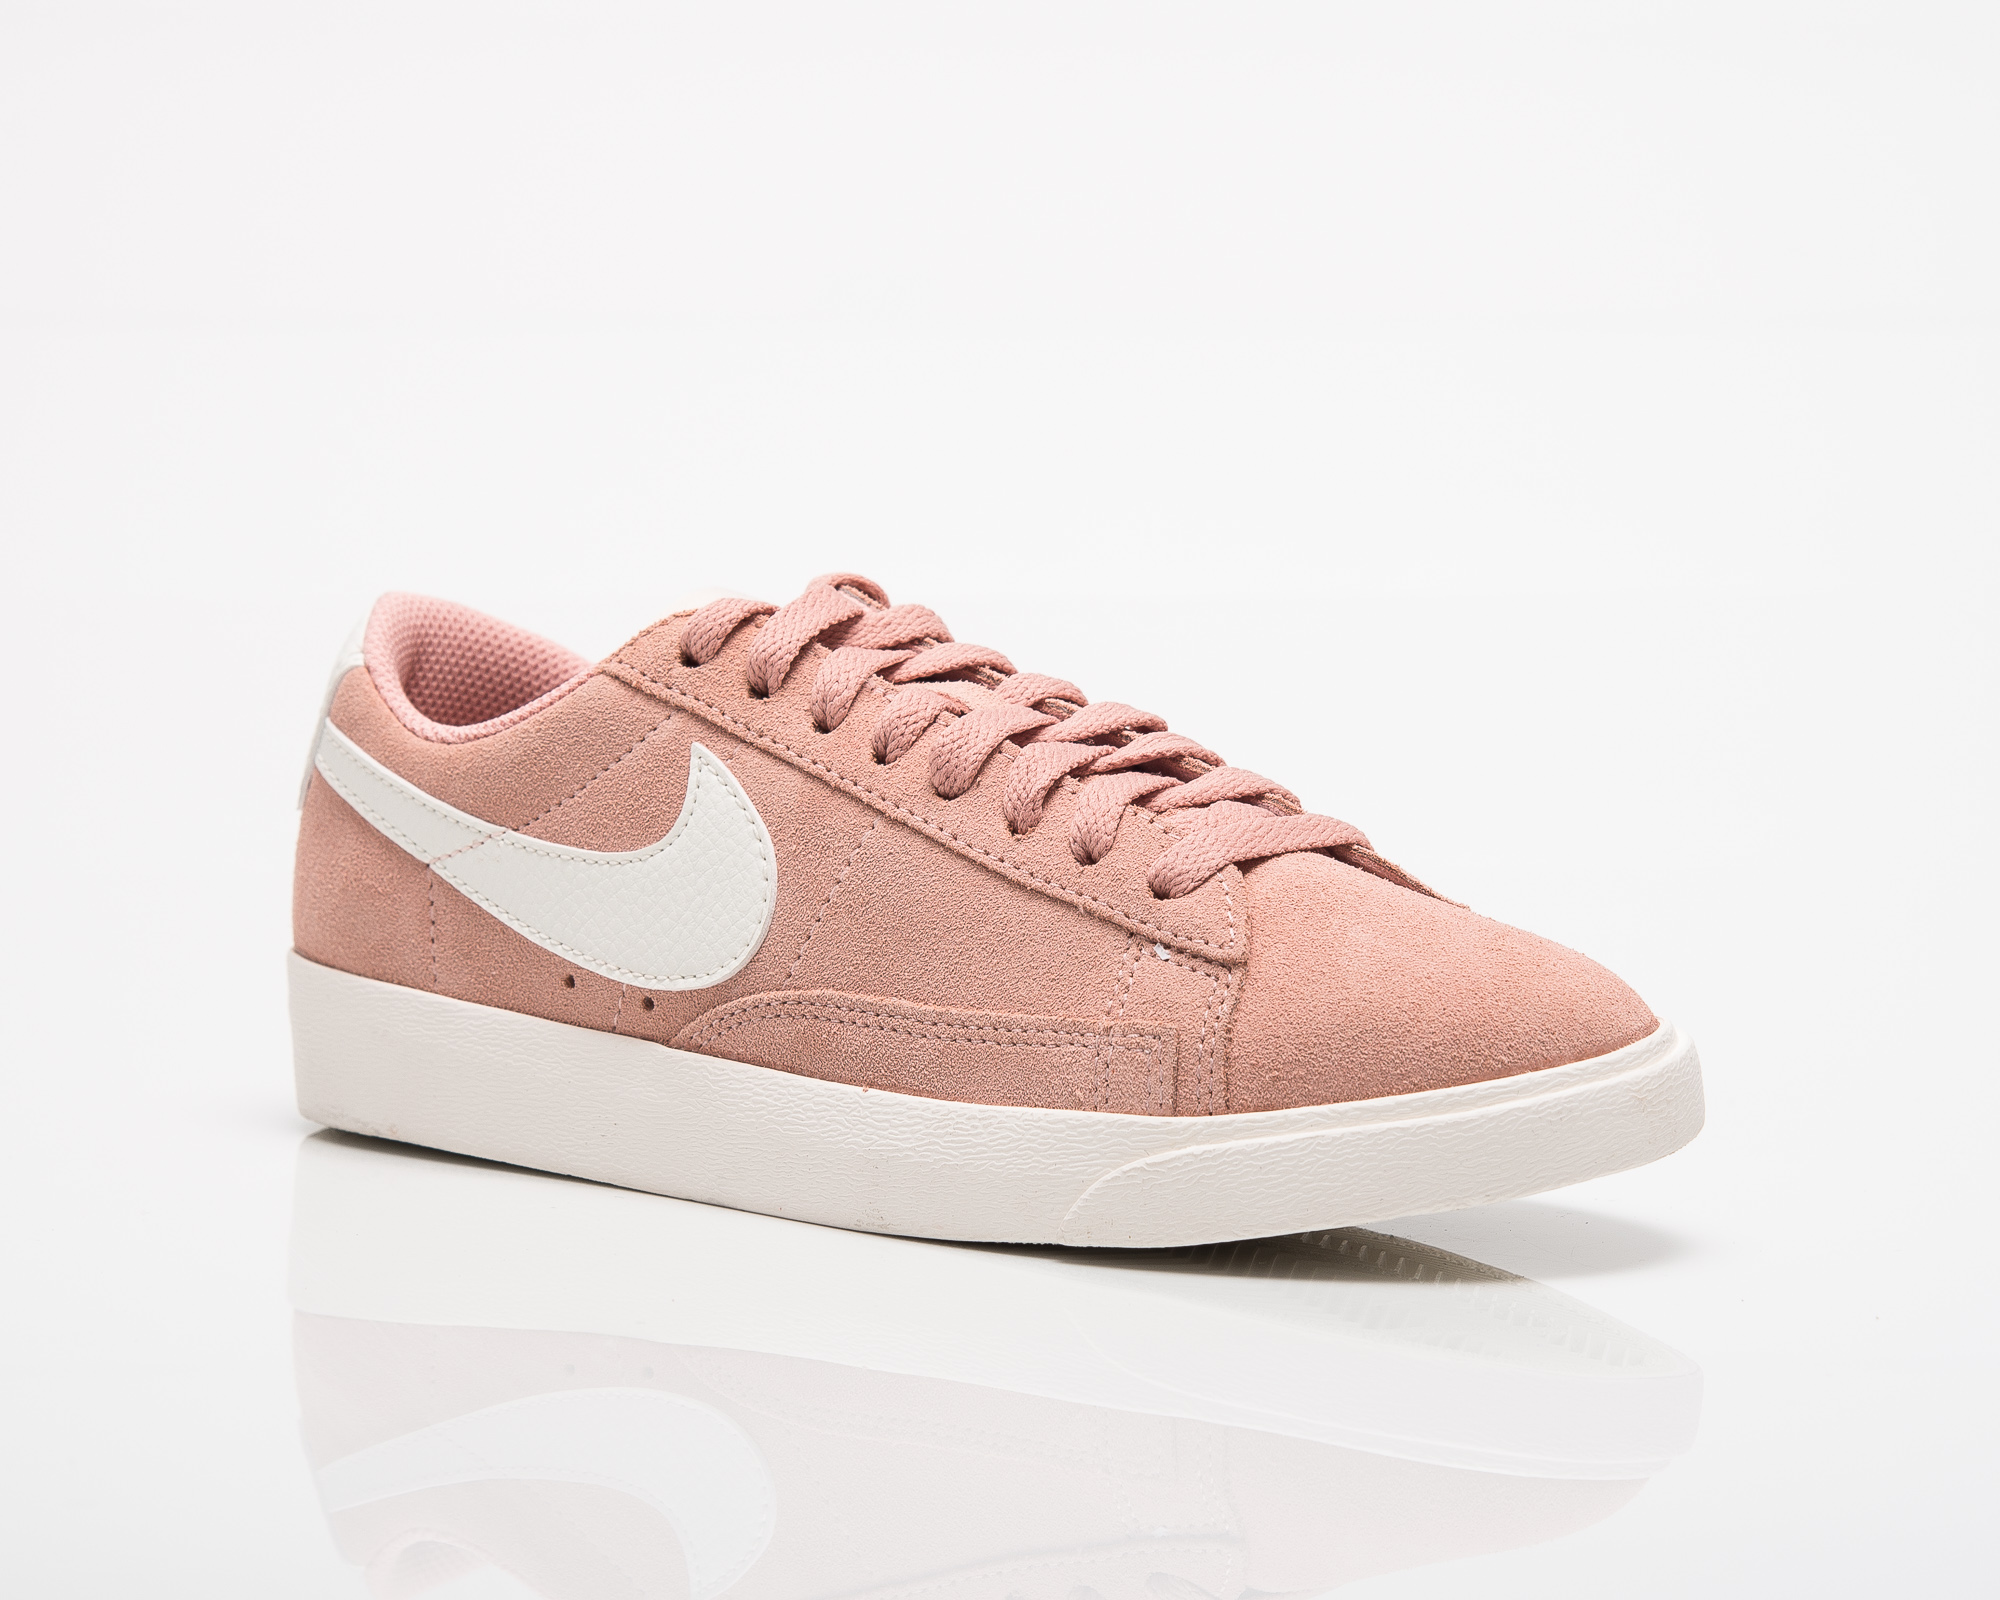 premium selection 854ba 698b0 Nike Wmns Blazer Low SD - Shoes Casual - Sporting goods .